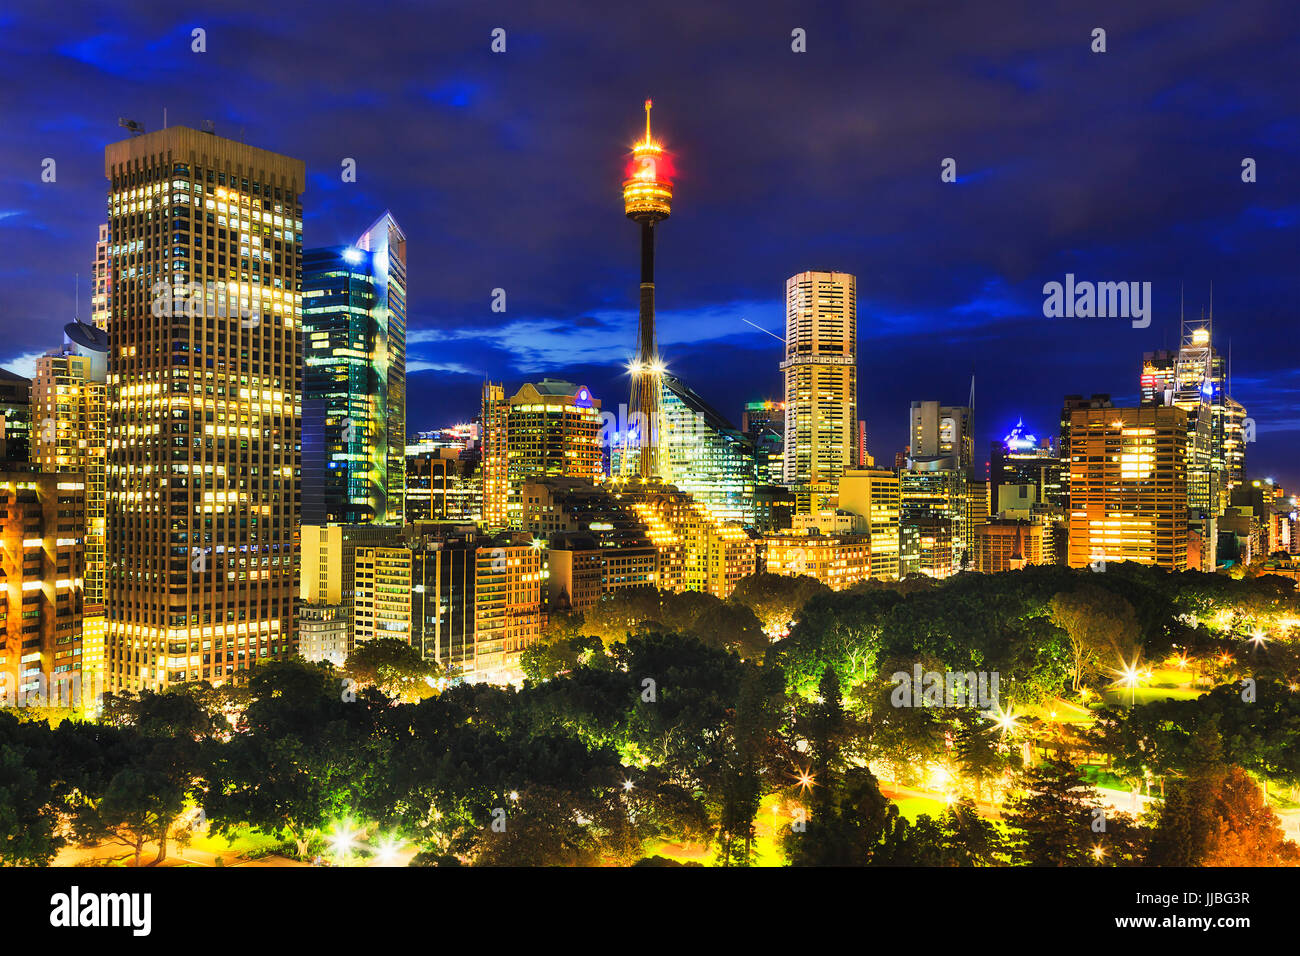 Panorama of Sydney city high-rise towers illuminated at sunset standing over green trees of the central Hyde Park. - Stock Image